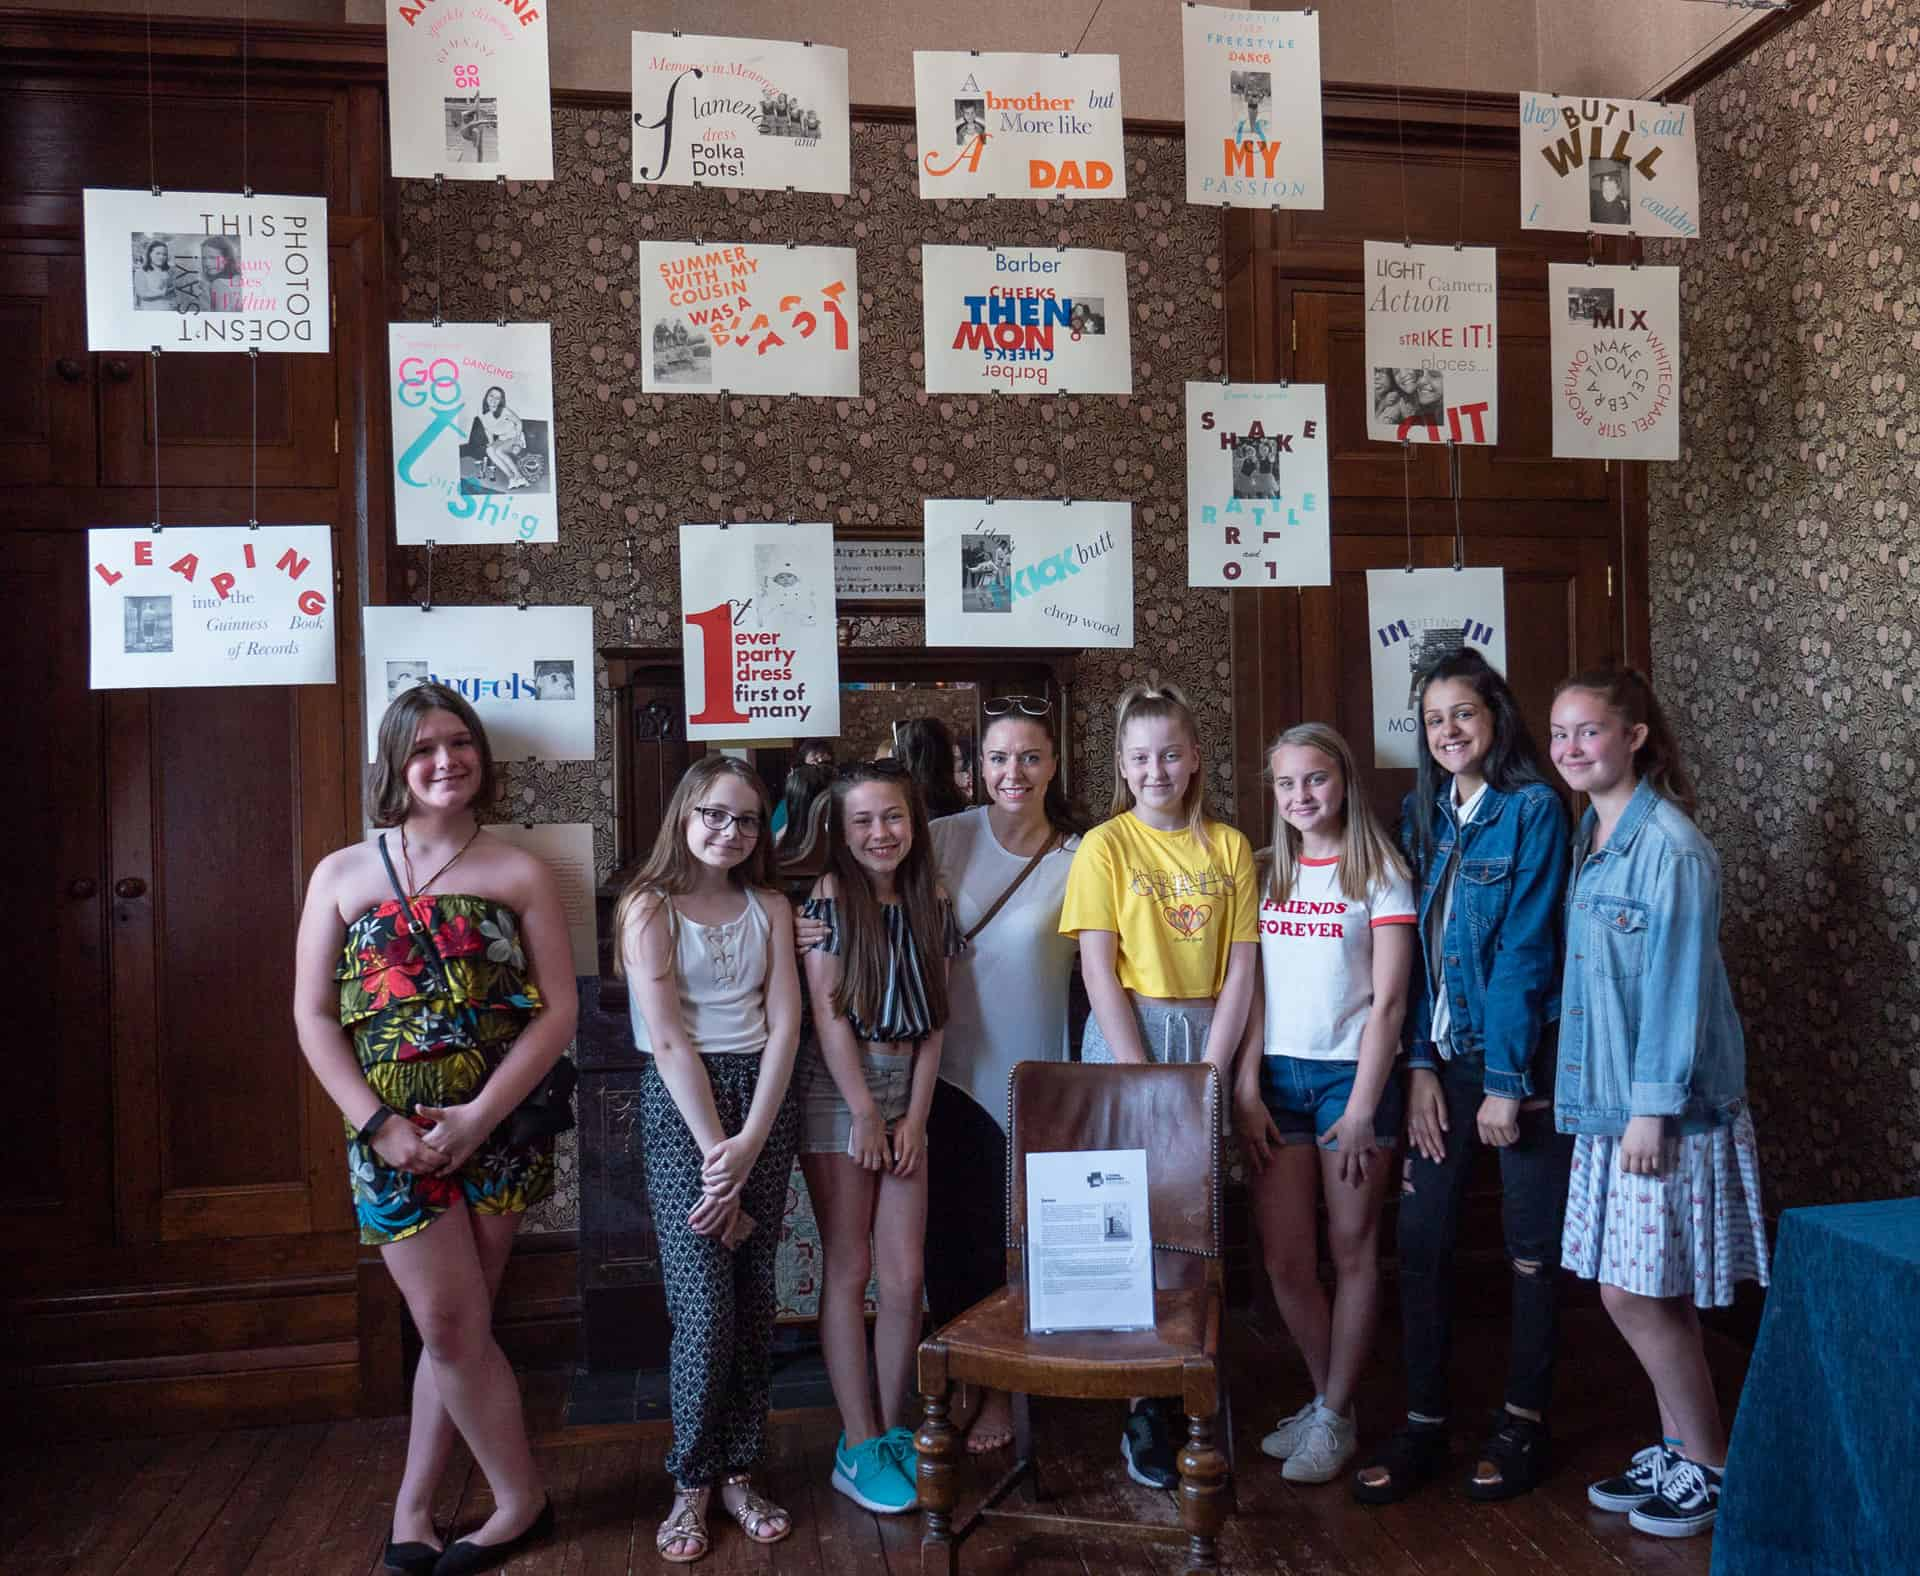 Some of the students from St Michael's School, Rowley Regis, stand in front of Seven that they produced for the Living Memory exhbition.